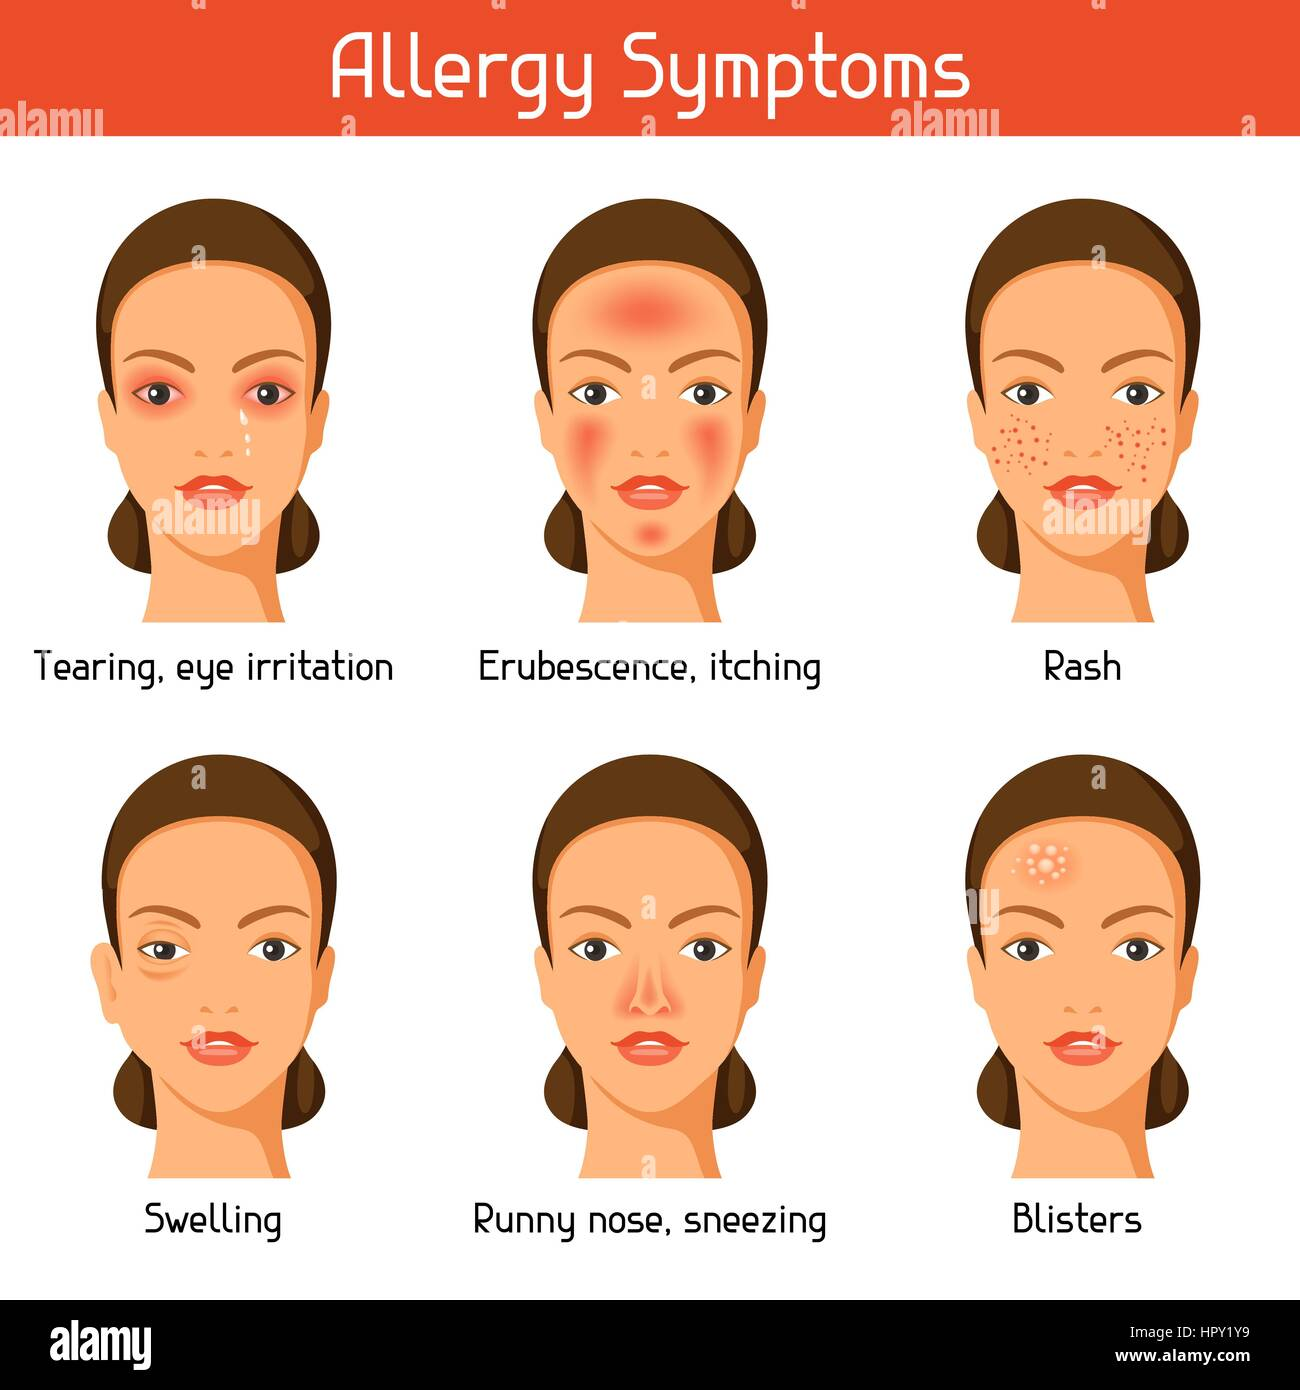 Allergy symptoms. Vector illustration for medical websites advertising medications - Stock Image